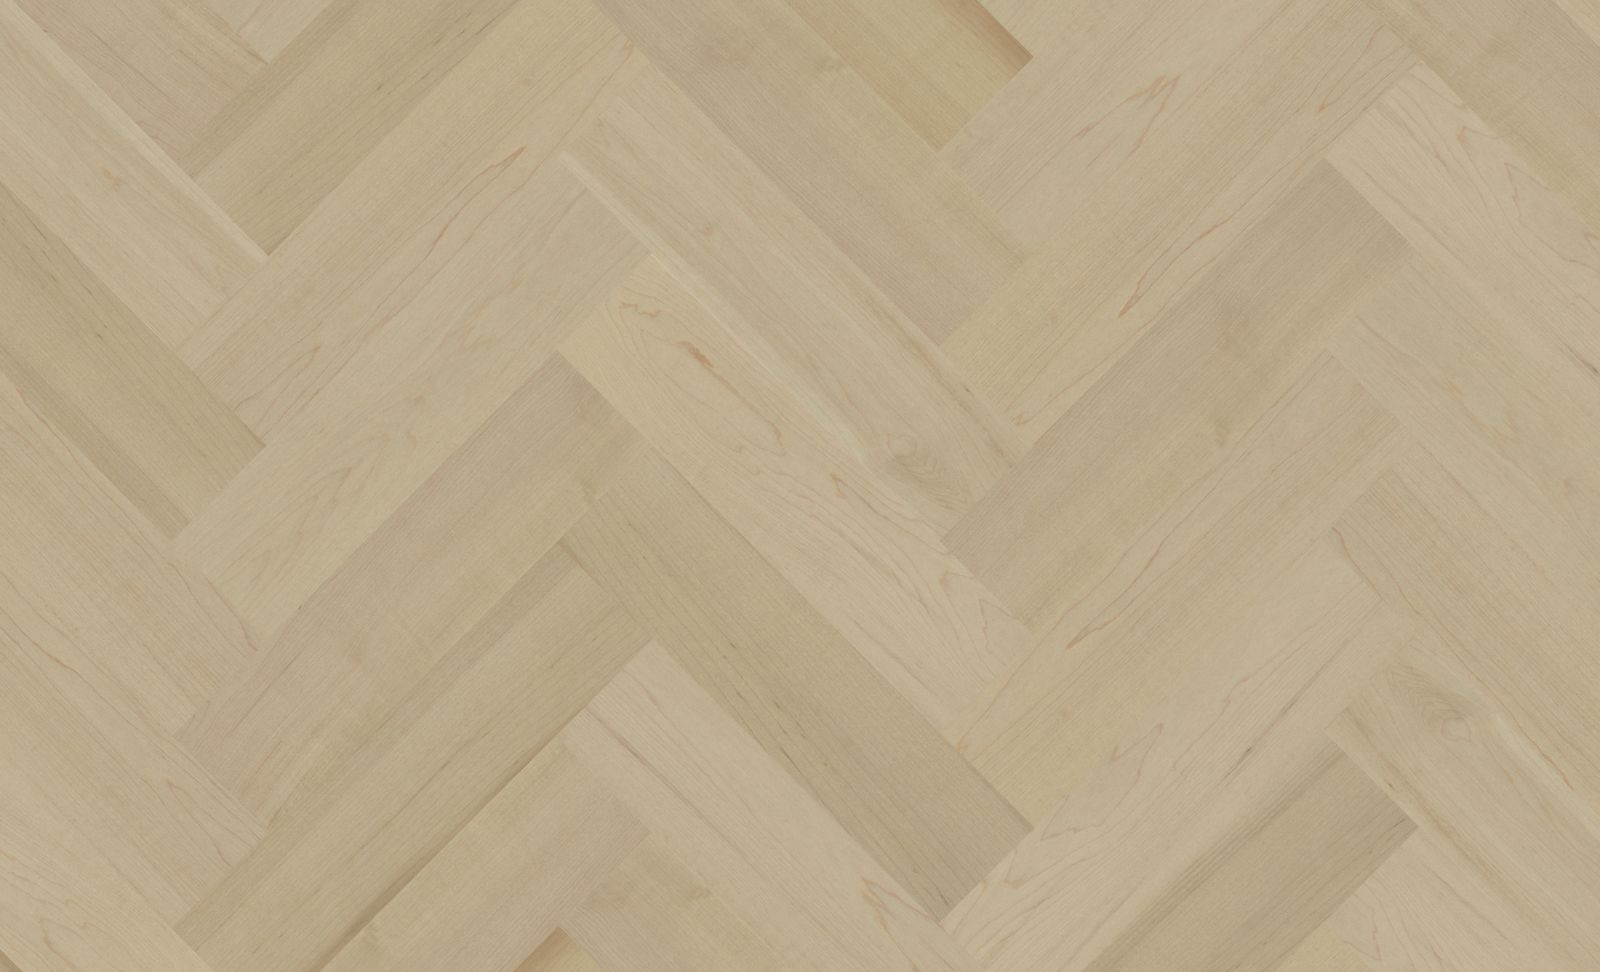 Mercier Wood Flooring Hard Maple Haze HRDMPLHZ